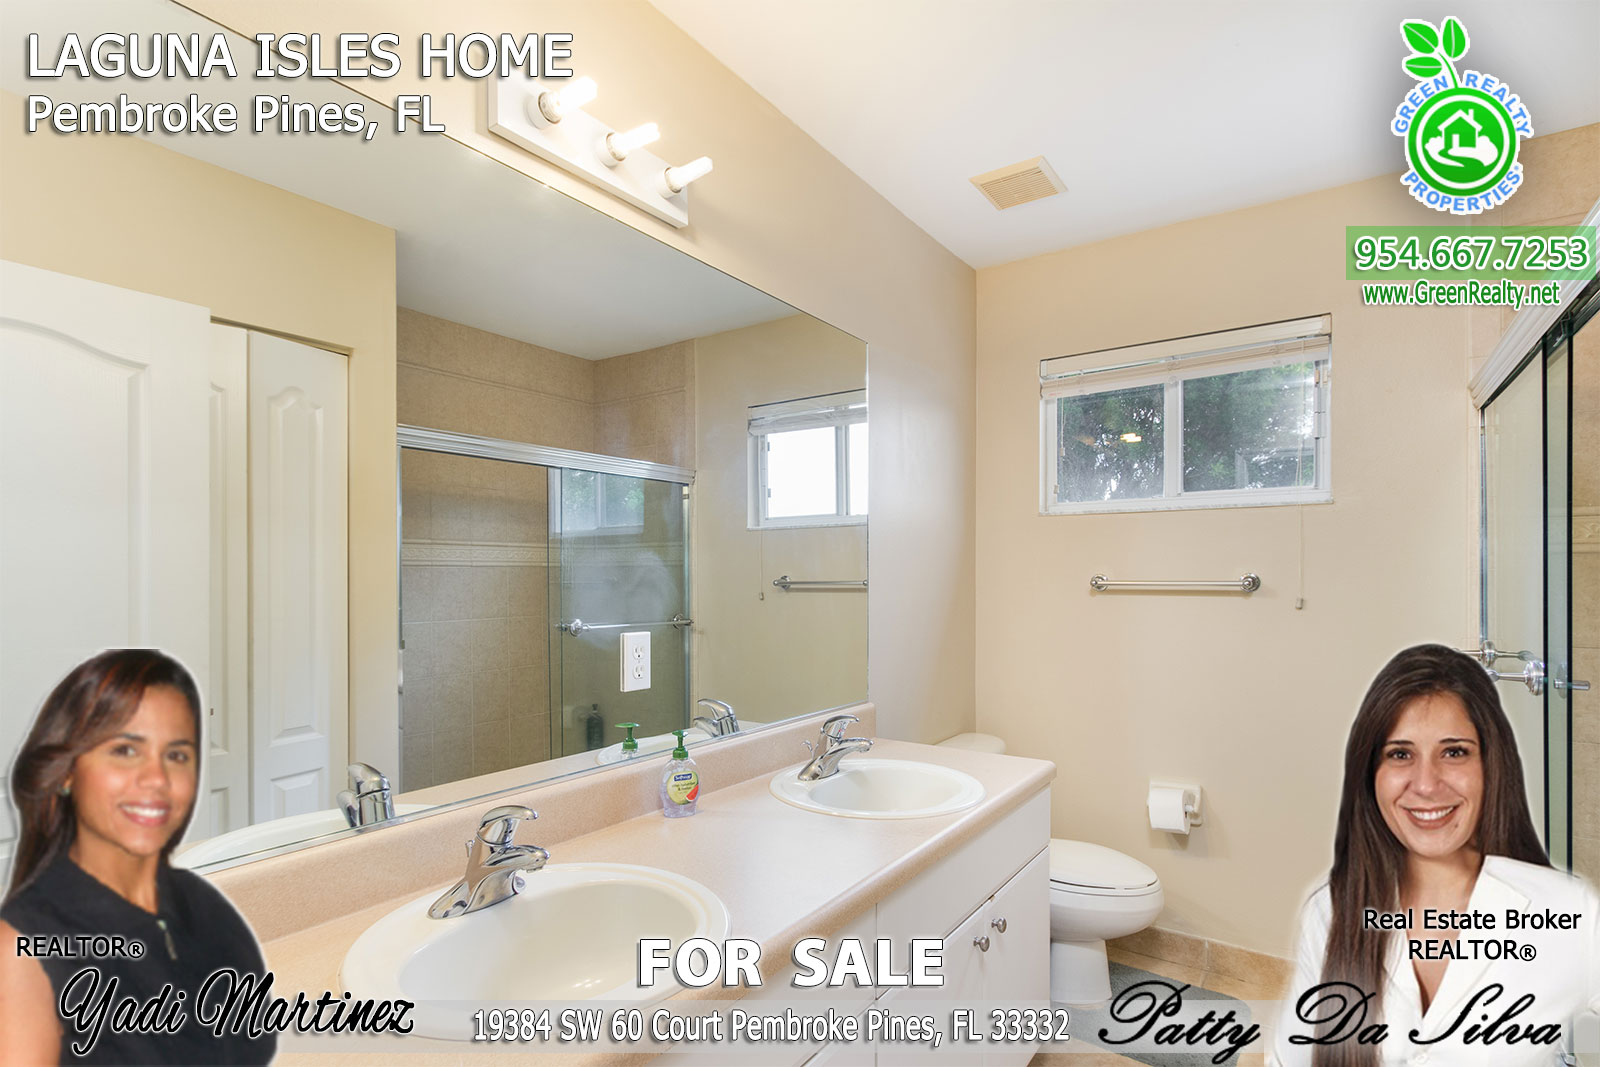 Pembroke-pines-laguna-isles-home-for-sale-by-green-realty-properties-21